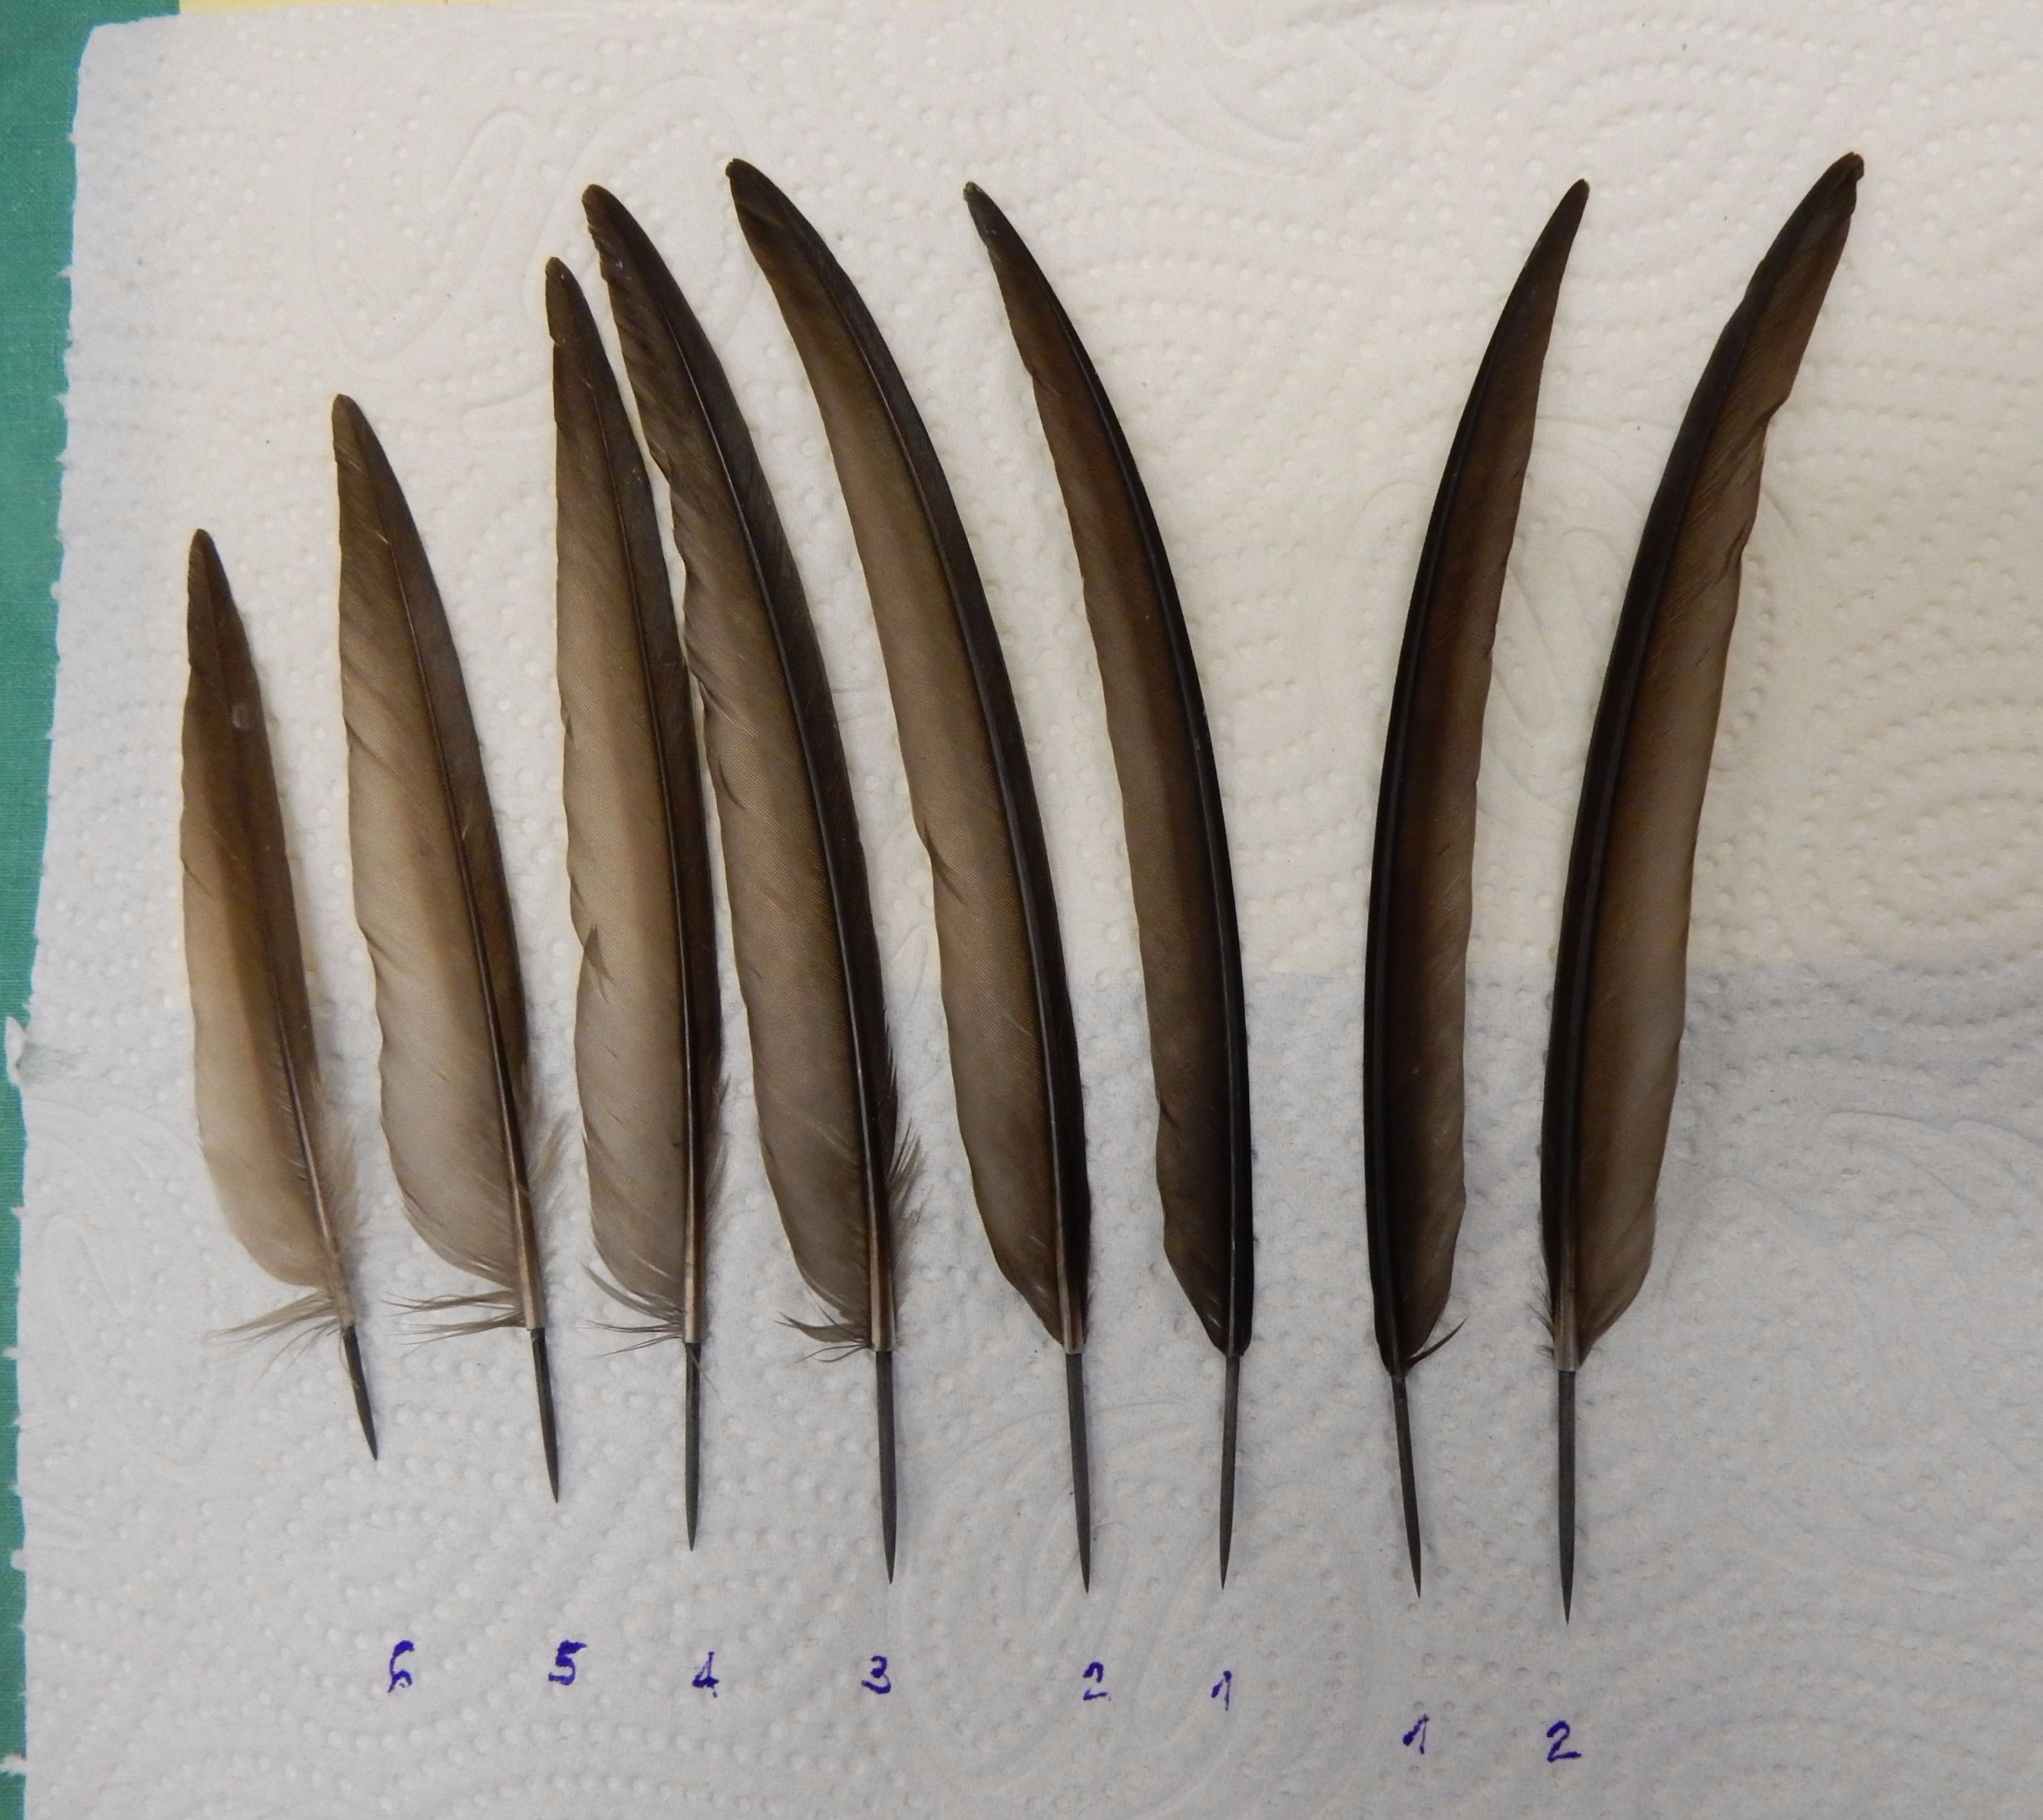 The feathers for transplant.